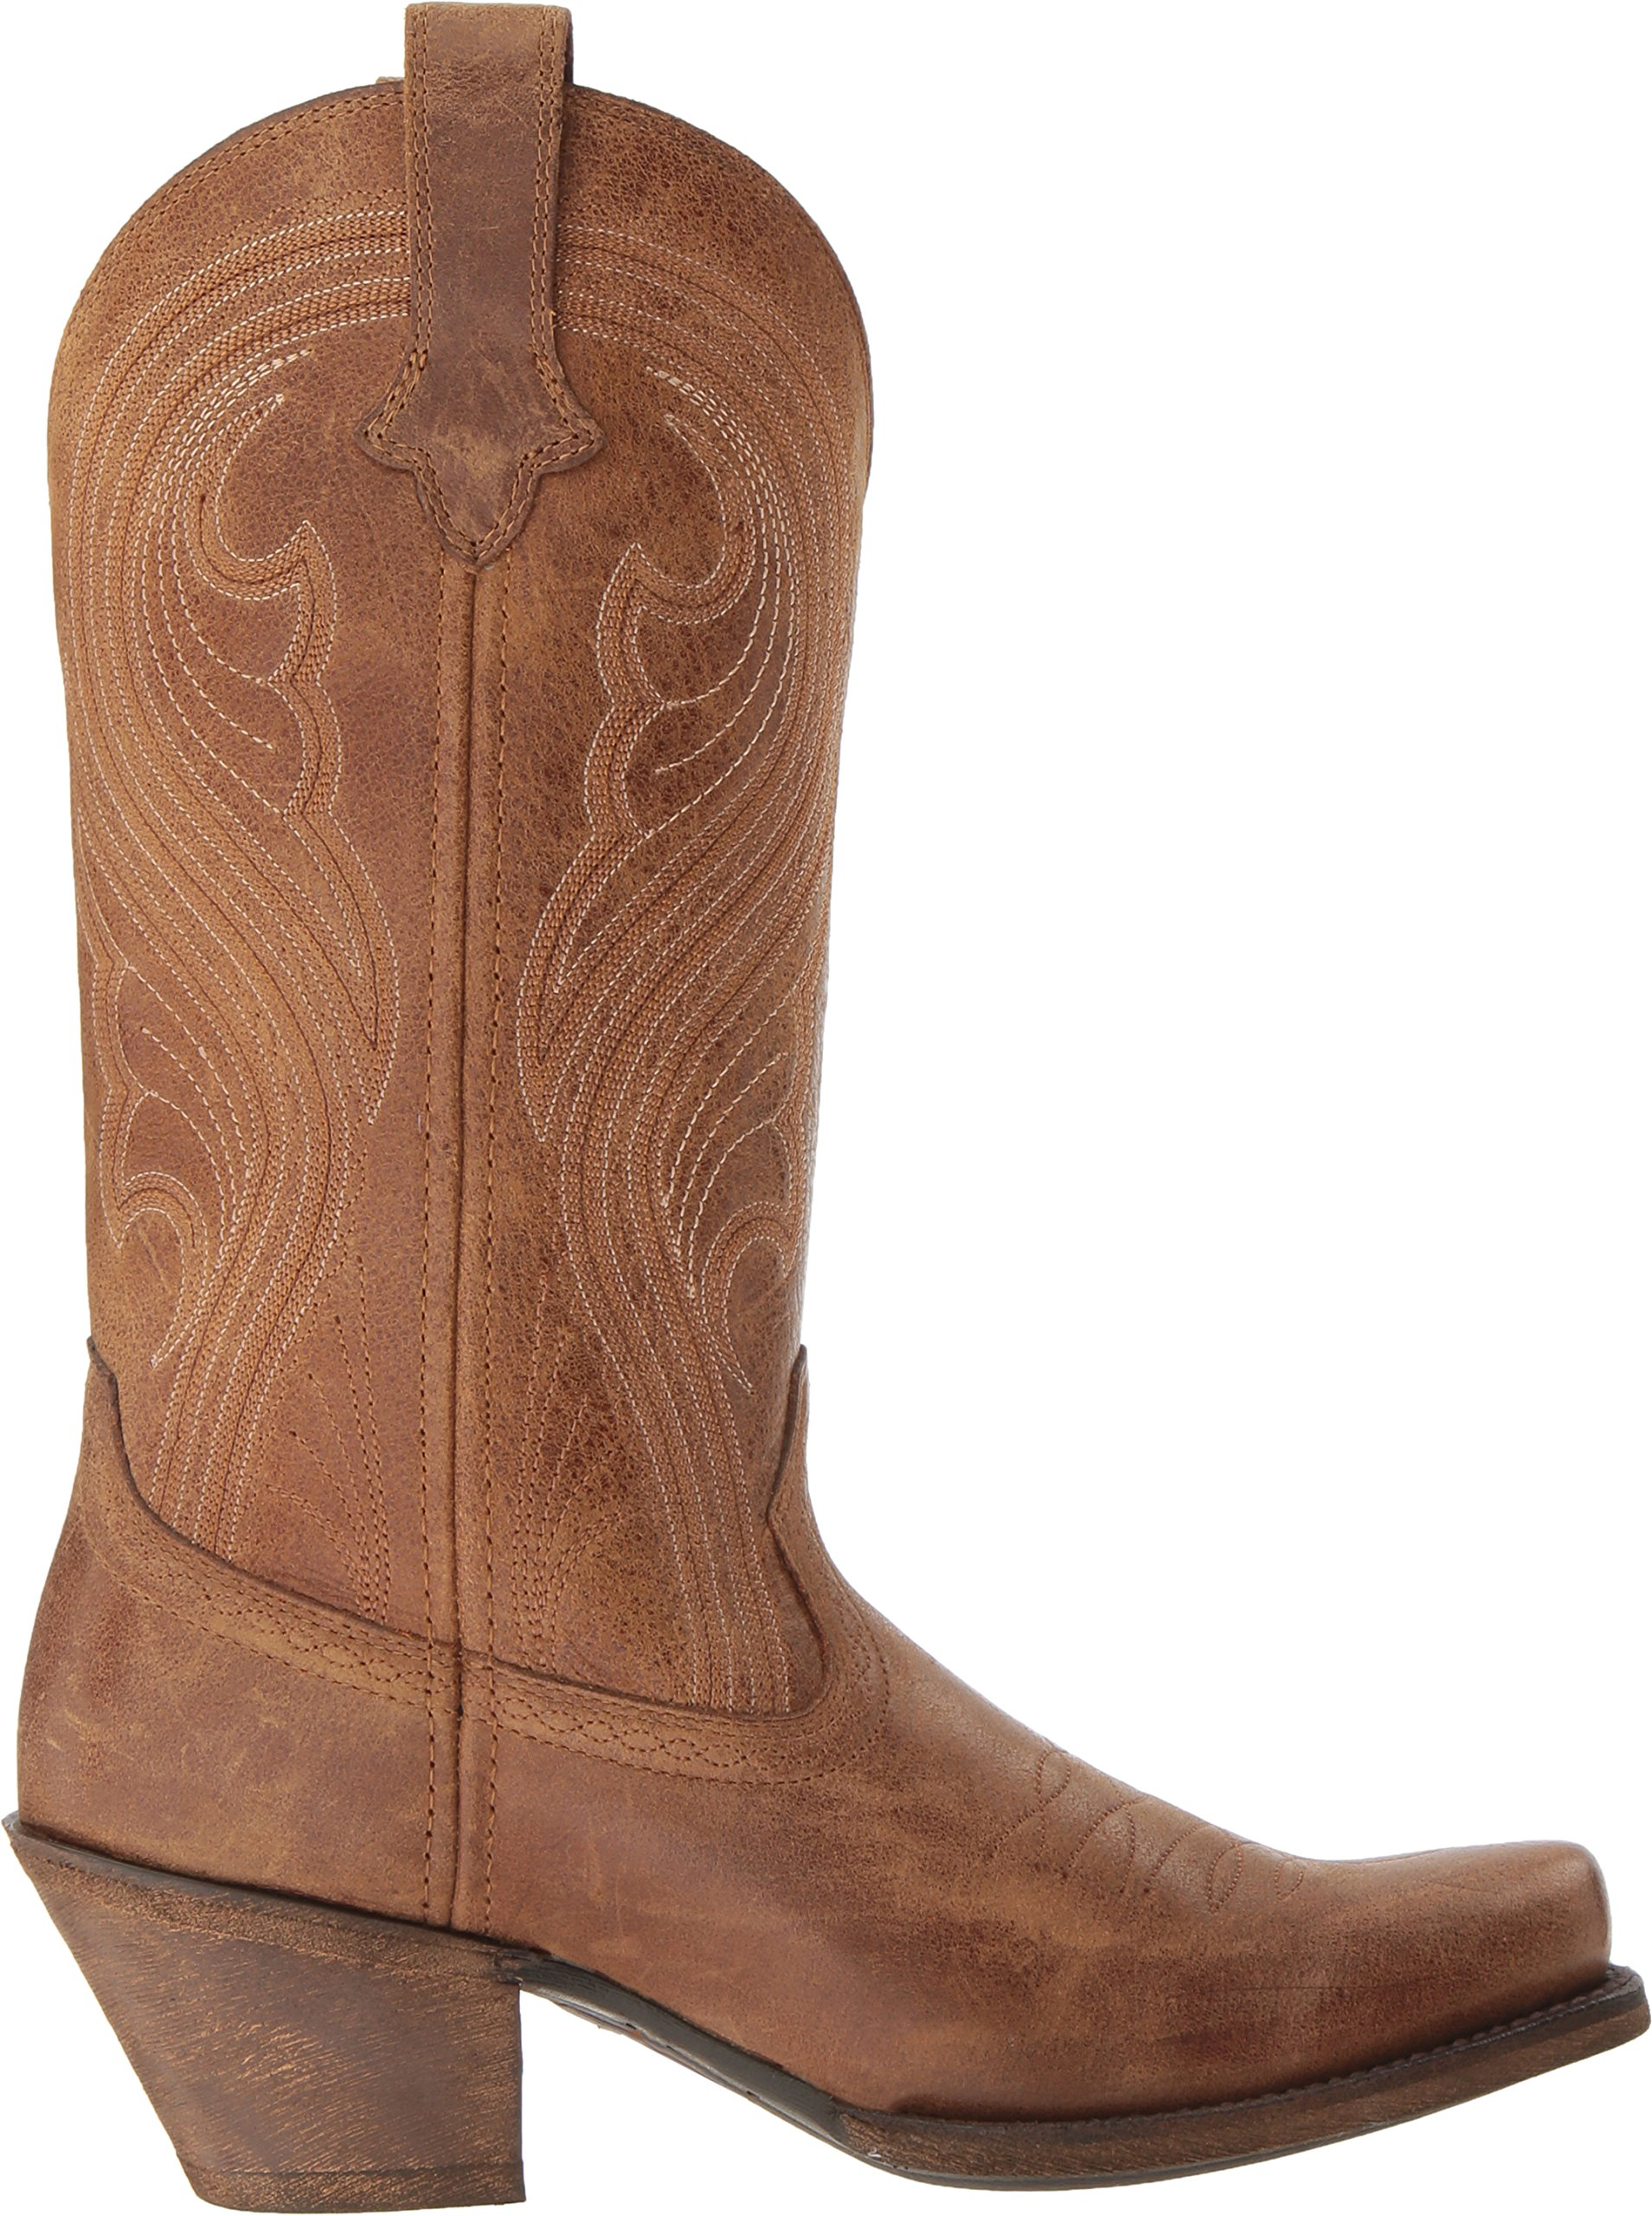 Ariat Women's Lively Western Cowboy Boot, Old West Brown, 9 B US by Ariat (Image #7)